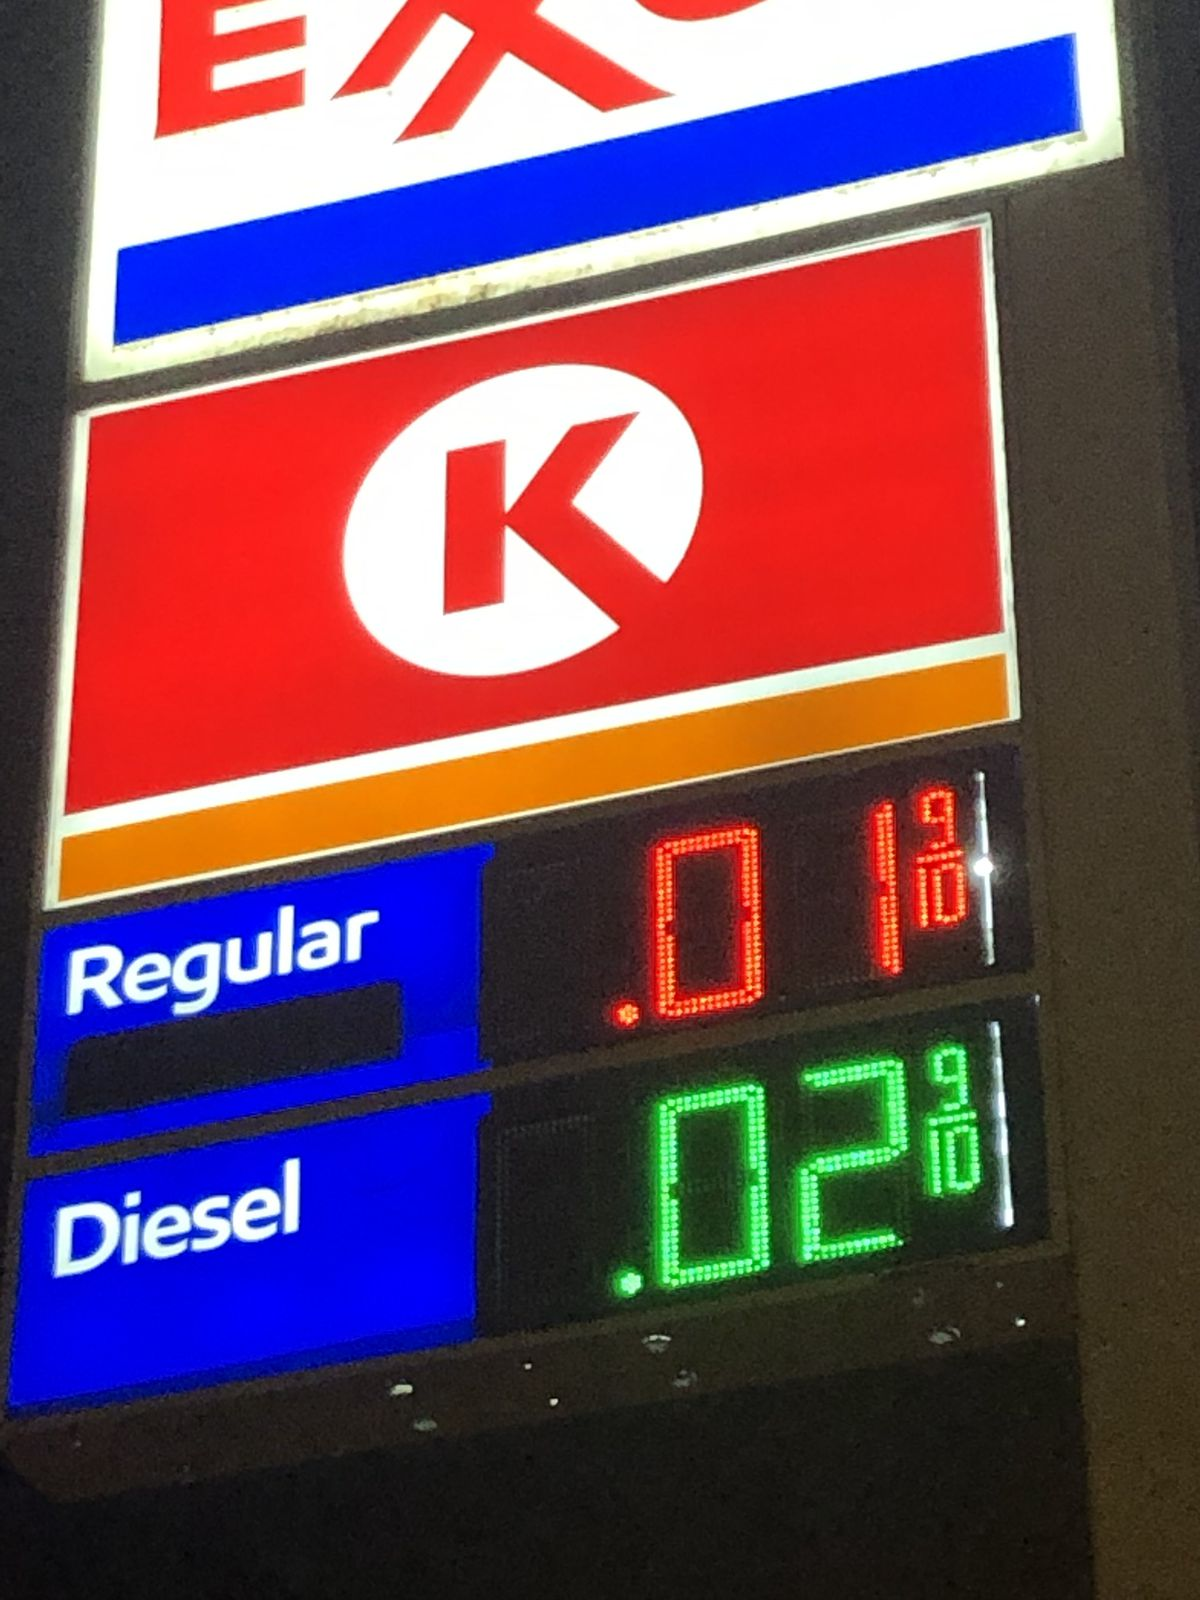 Gas sold for a penny after pumps malfunction at Baton Rouge station - WAFB